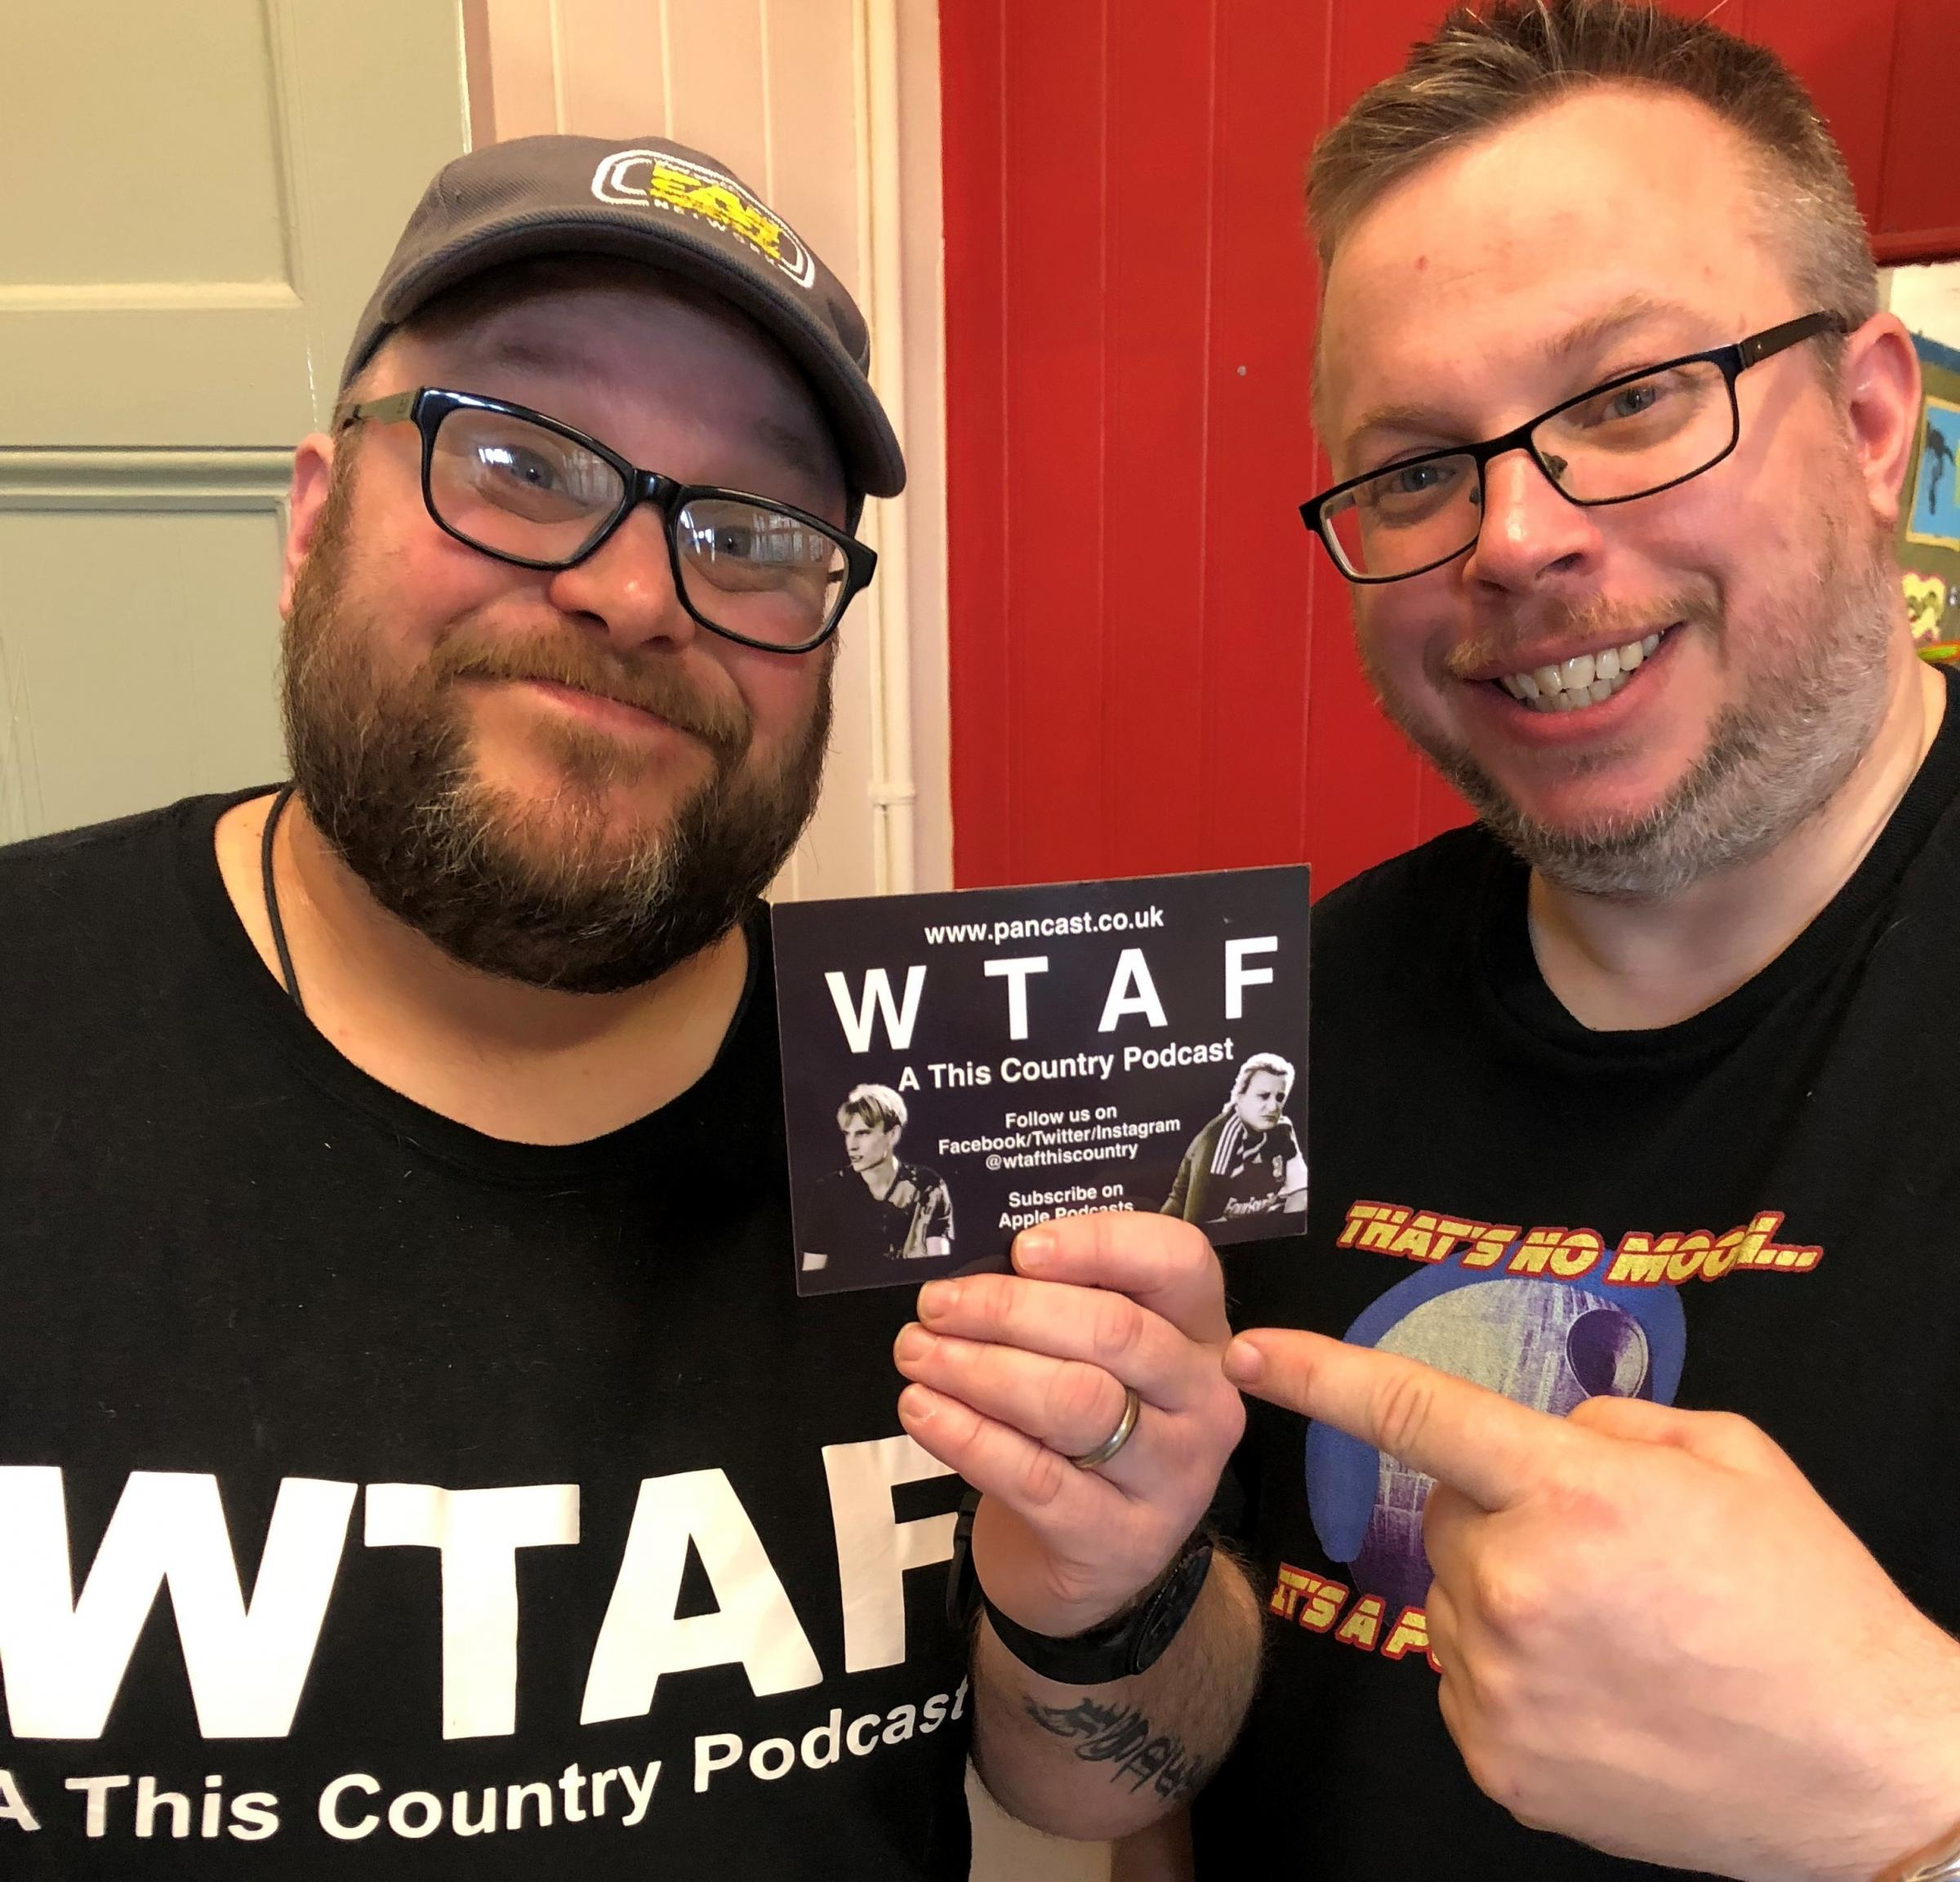 WTAF podcast will have its first live show in May. Credit: Carl Pawlowski